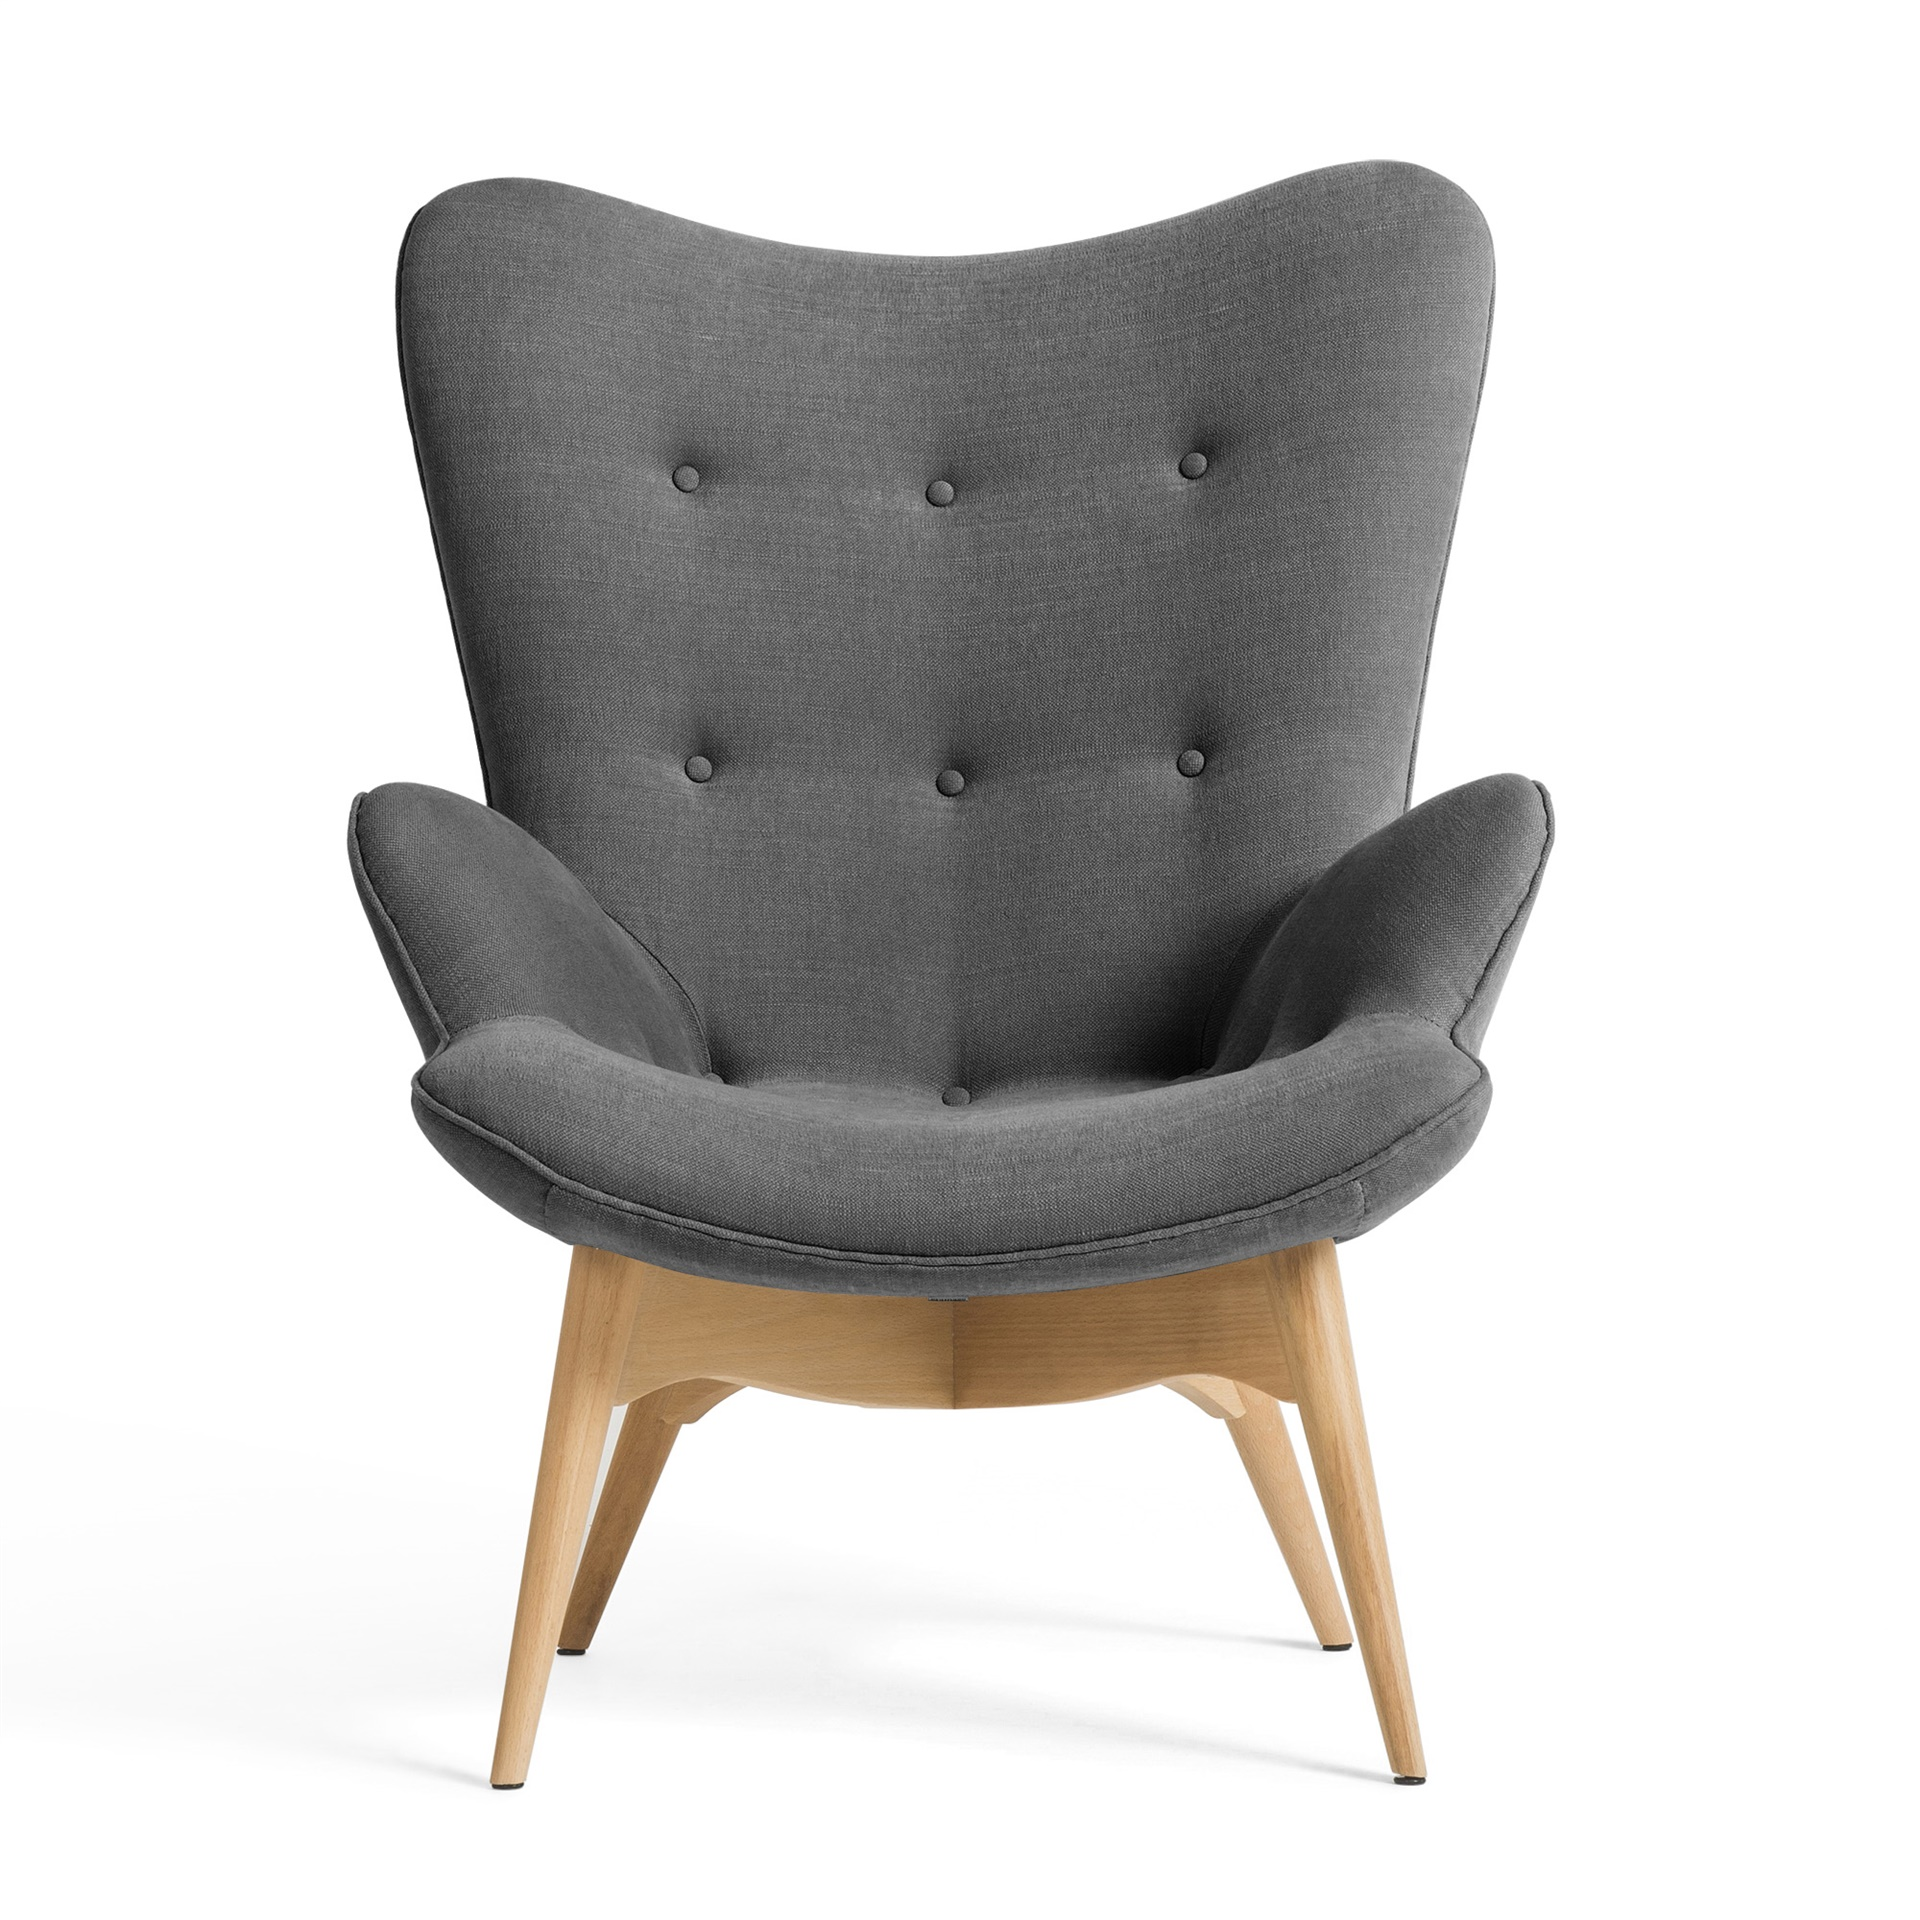 Lounge Chair Grant Featherston Contour Lounge Chair